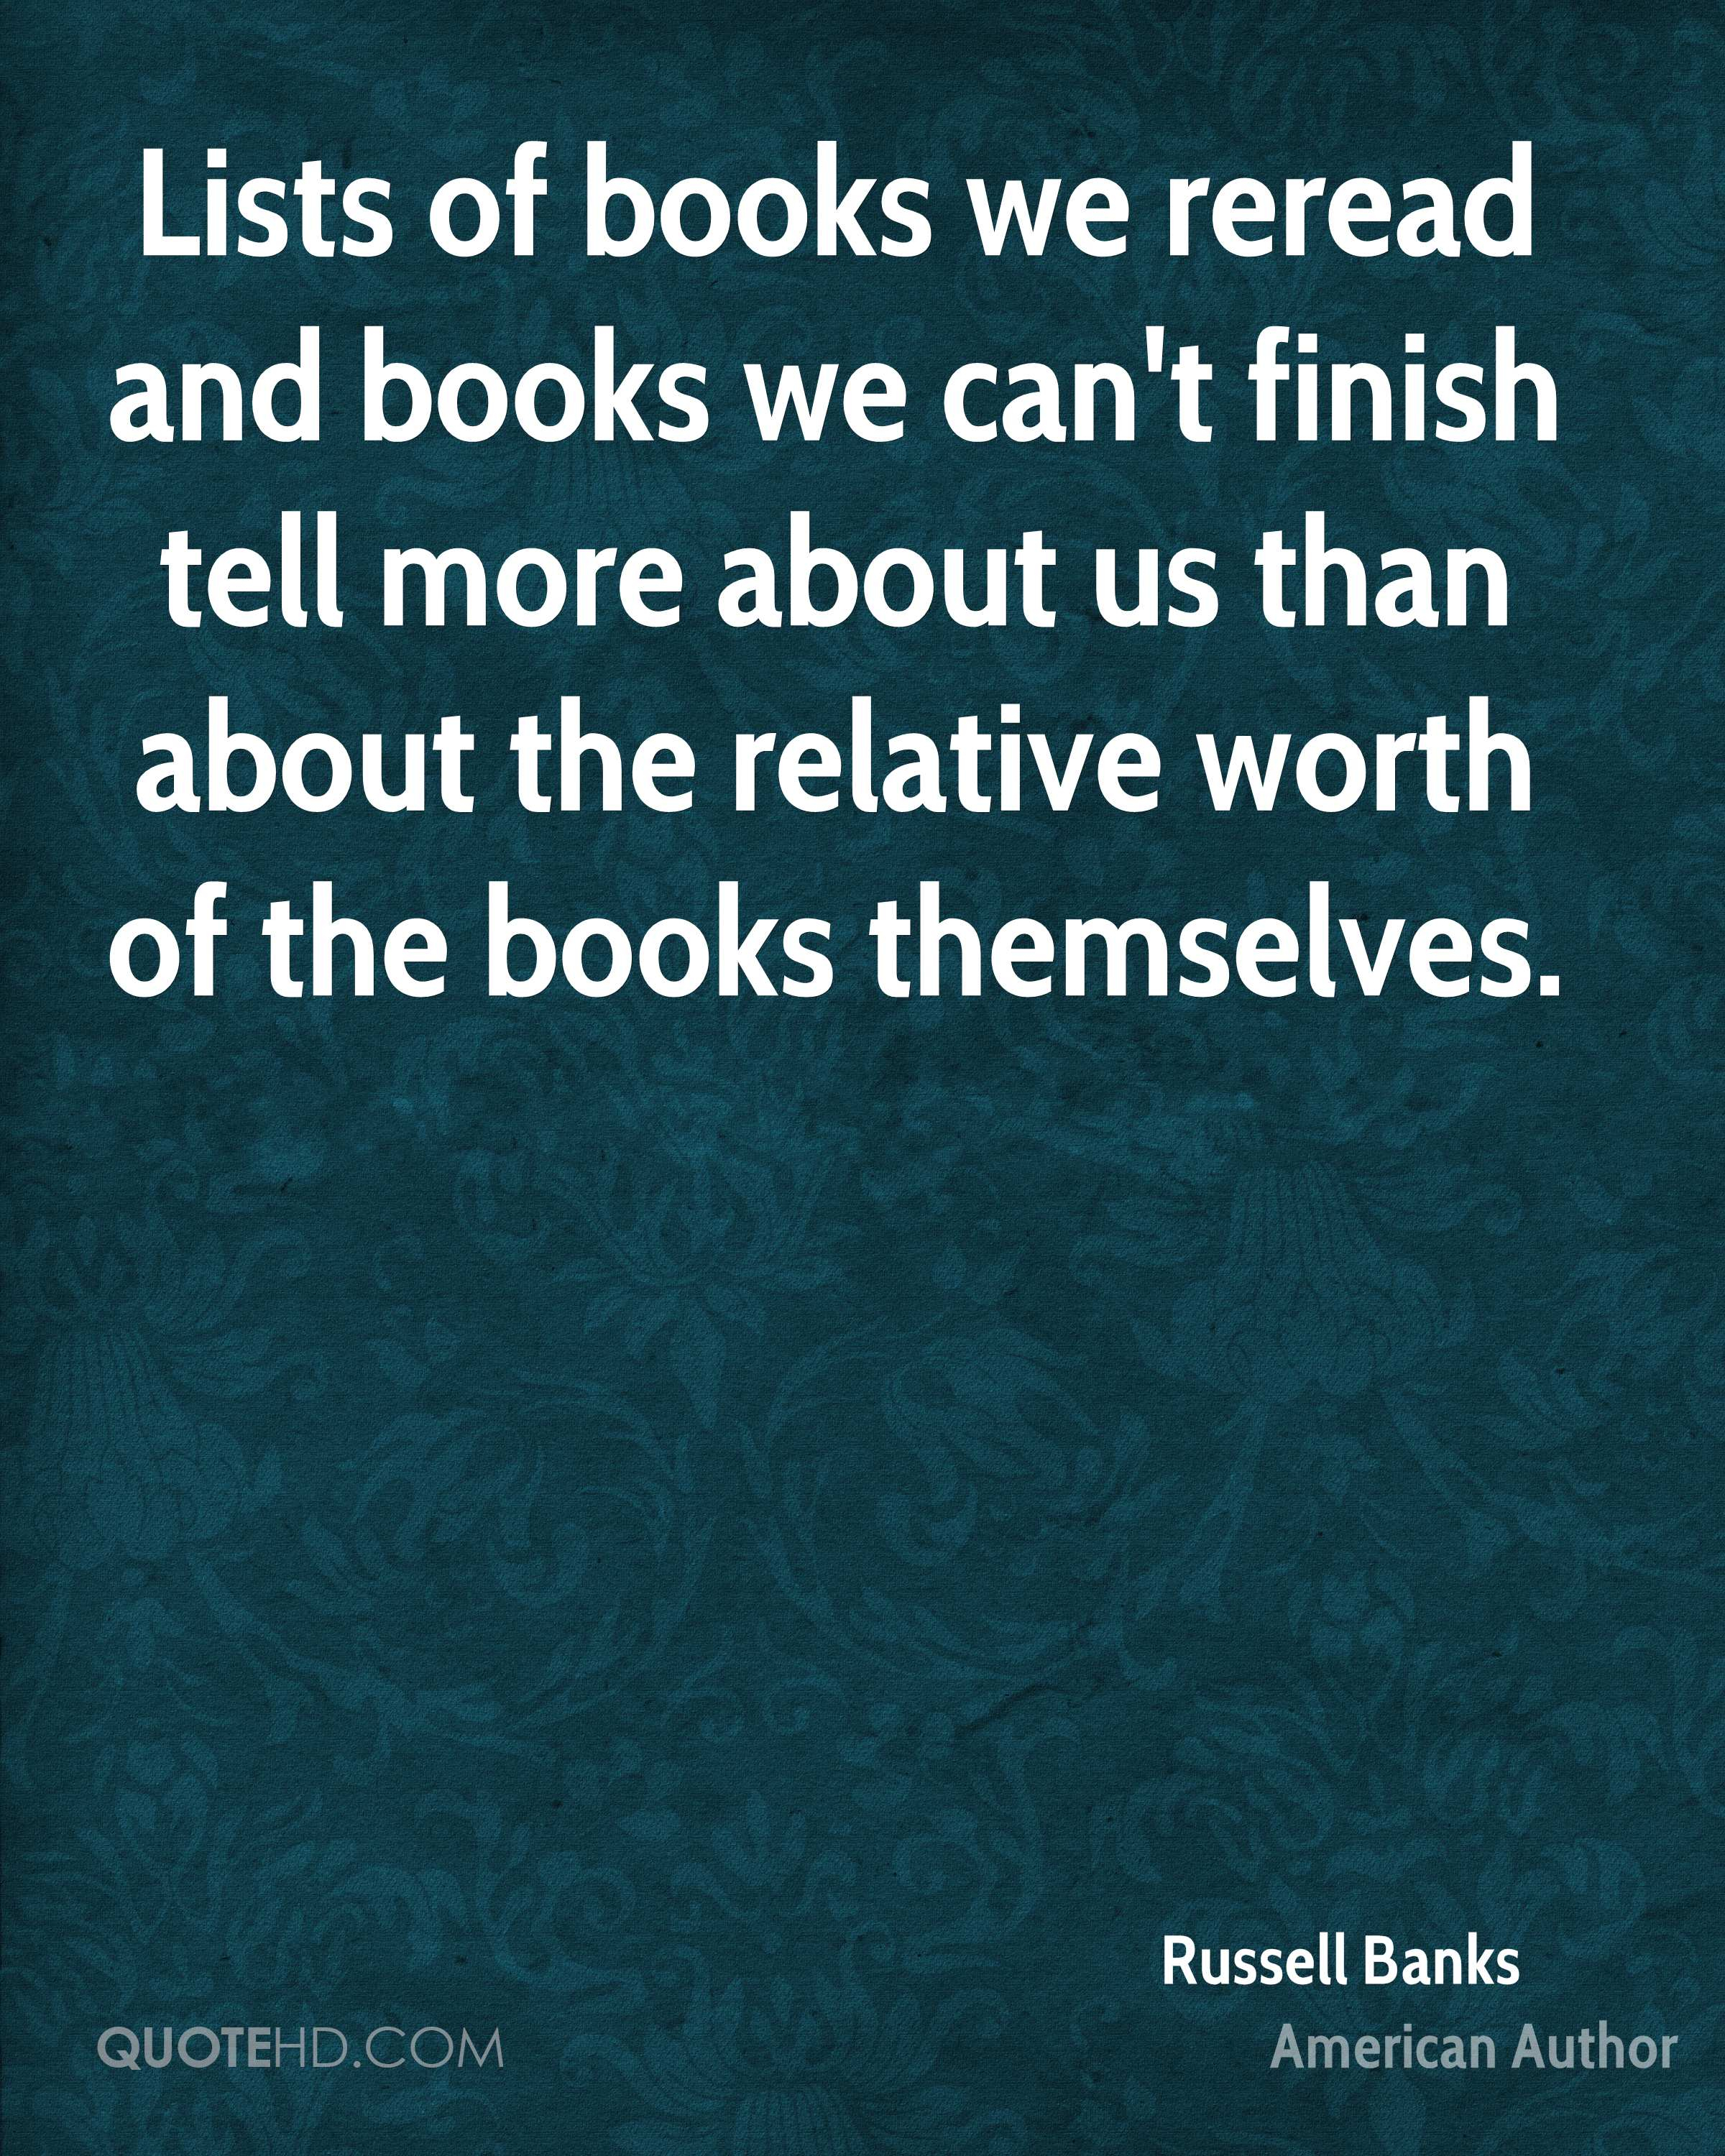 Lists of books we reread and books we can't finish tell more about us than about the relative worth of the books themselves.